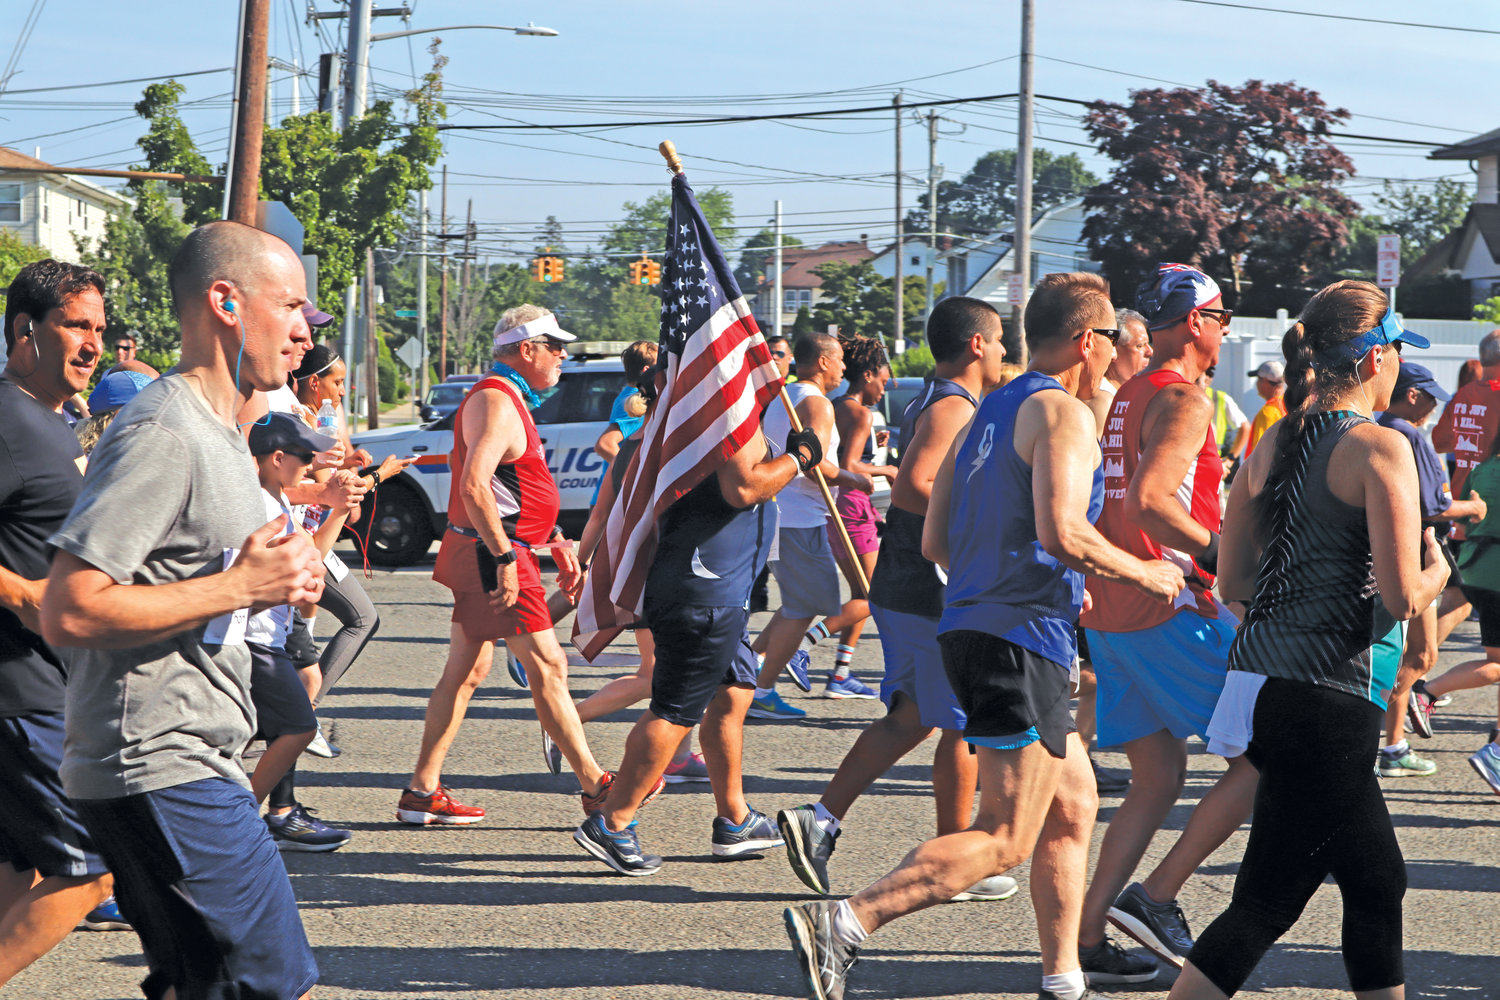 Peppered through the myriad of runners were glimpses of patriotic colors. One racer propped-up an American flag throughout the race.